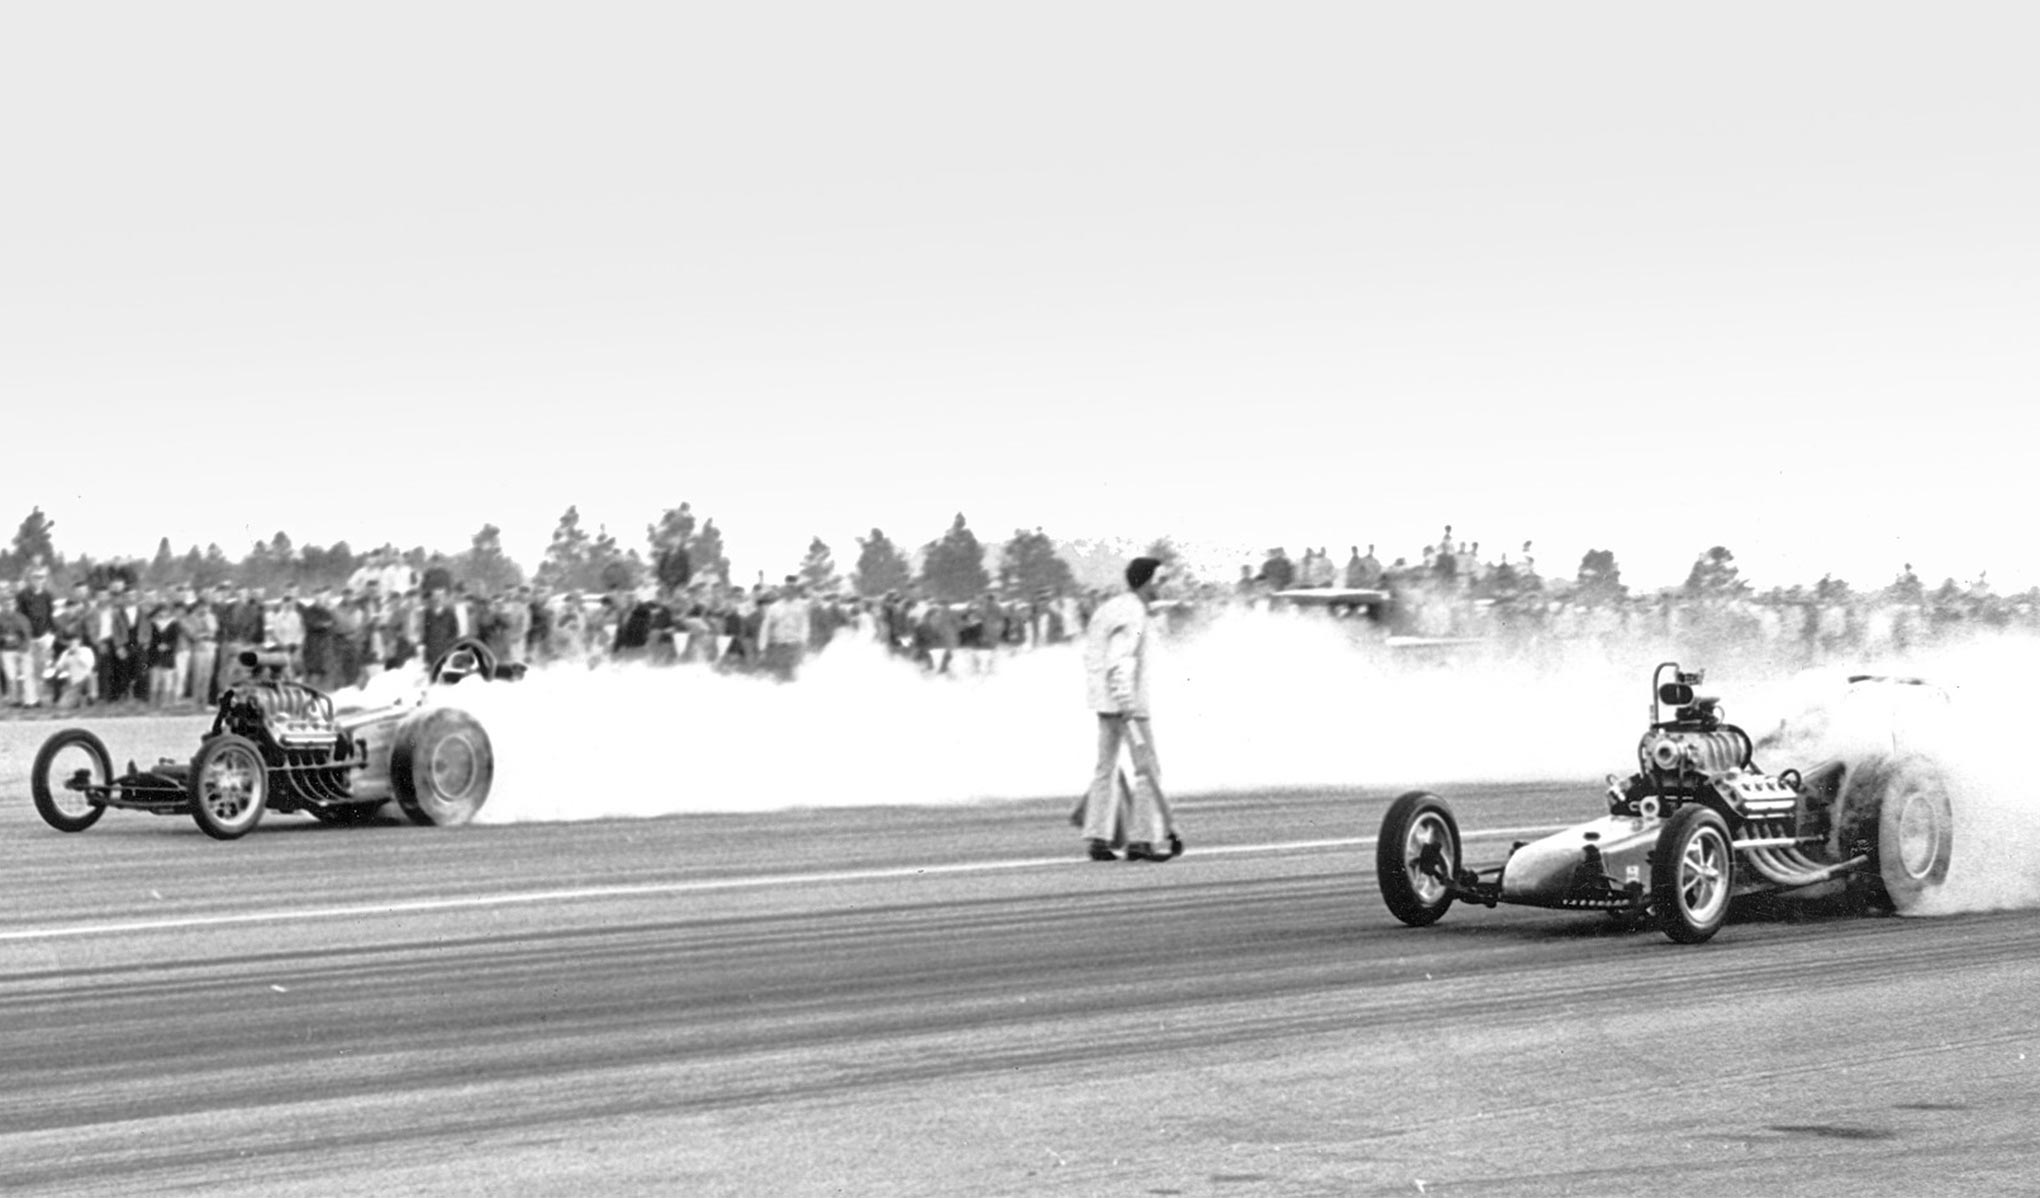 Here's another potentially groundbreaking event. The Thrifty and Kelly cars chose off against each other in the first round of eliminations on April 9, 1961, making this probably the first ever drag race between two nitrous-injected dragsters, if not cars in general. It ended in a marvelously fitting dead heat. Thrifty took Top Eliminator, with a head gasket taking out the Kelly car.